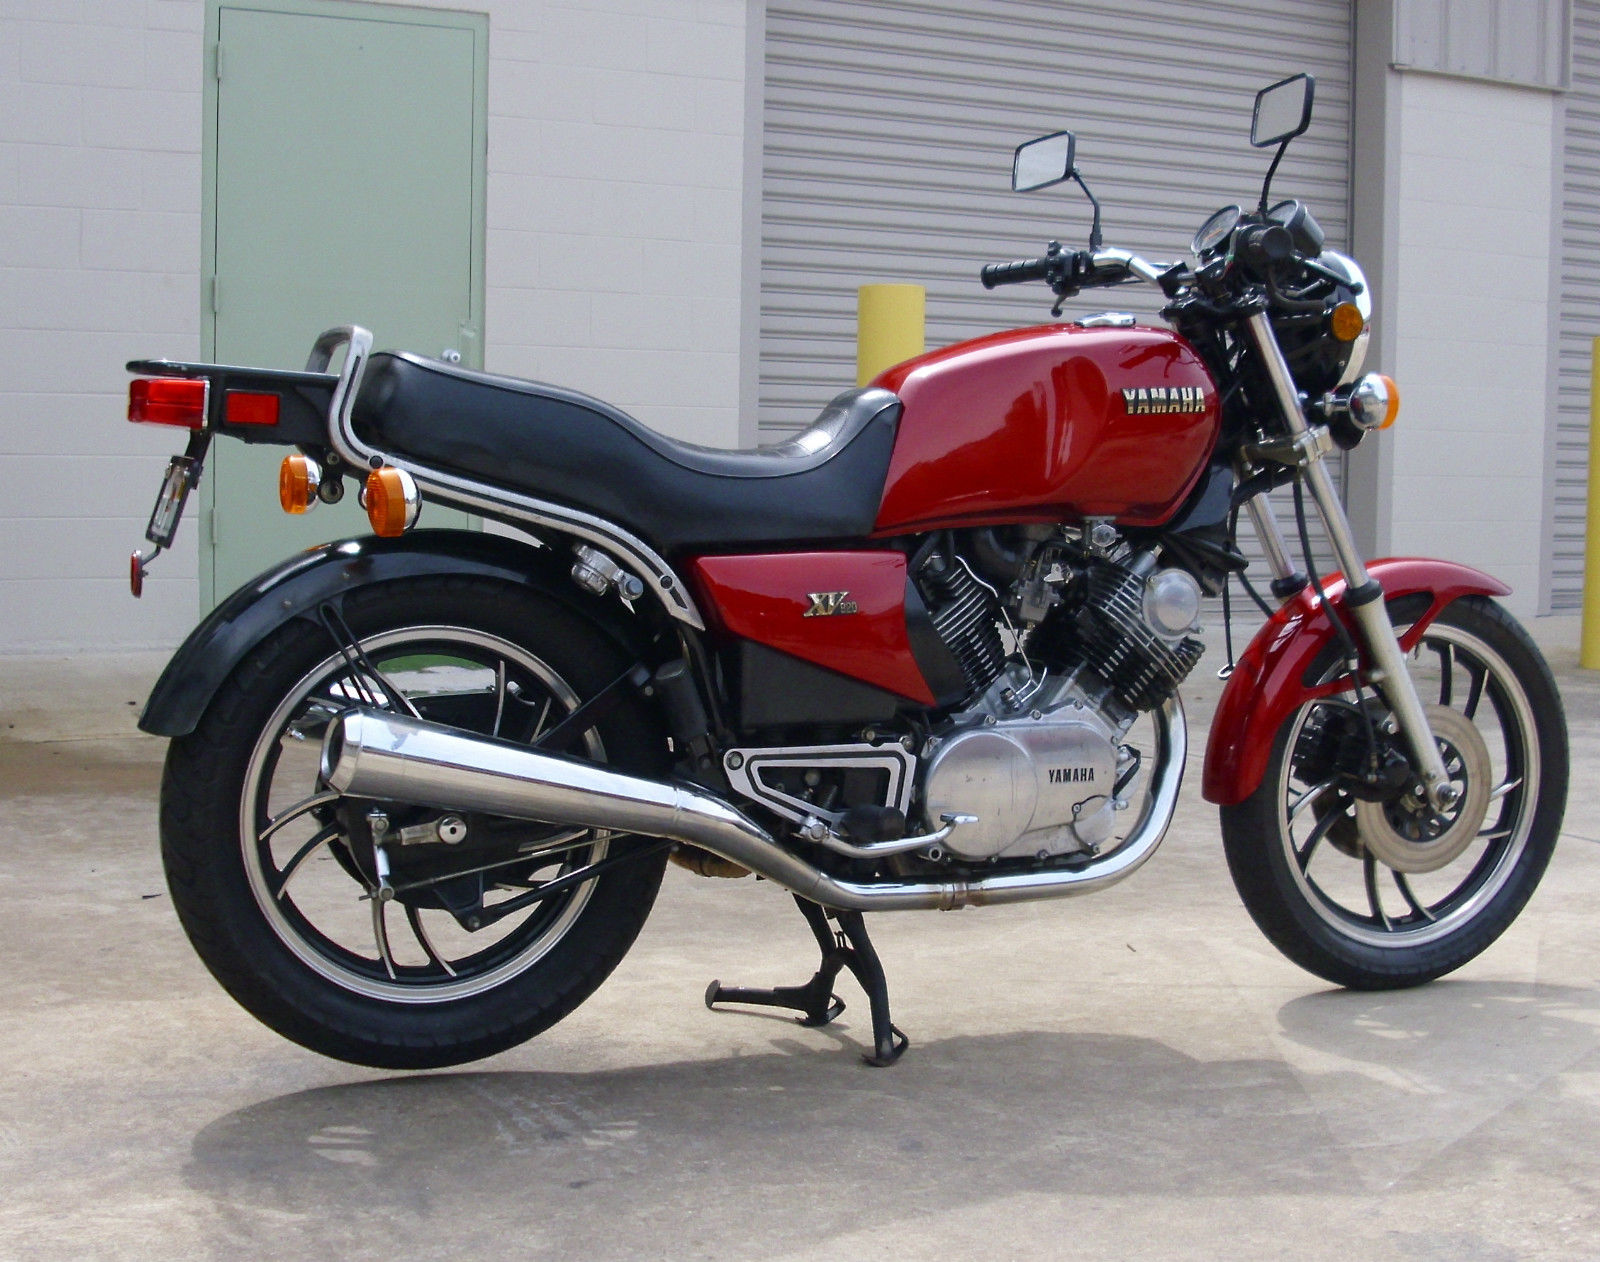 Yamaha tr photo - 1